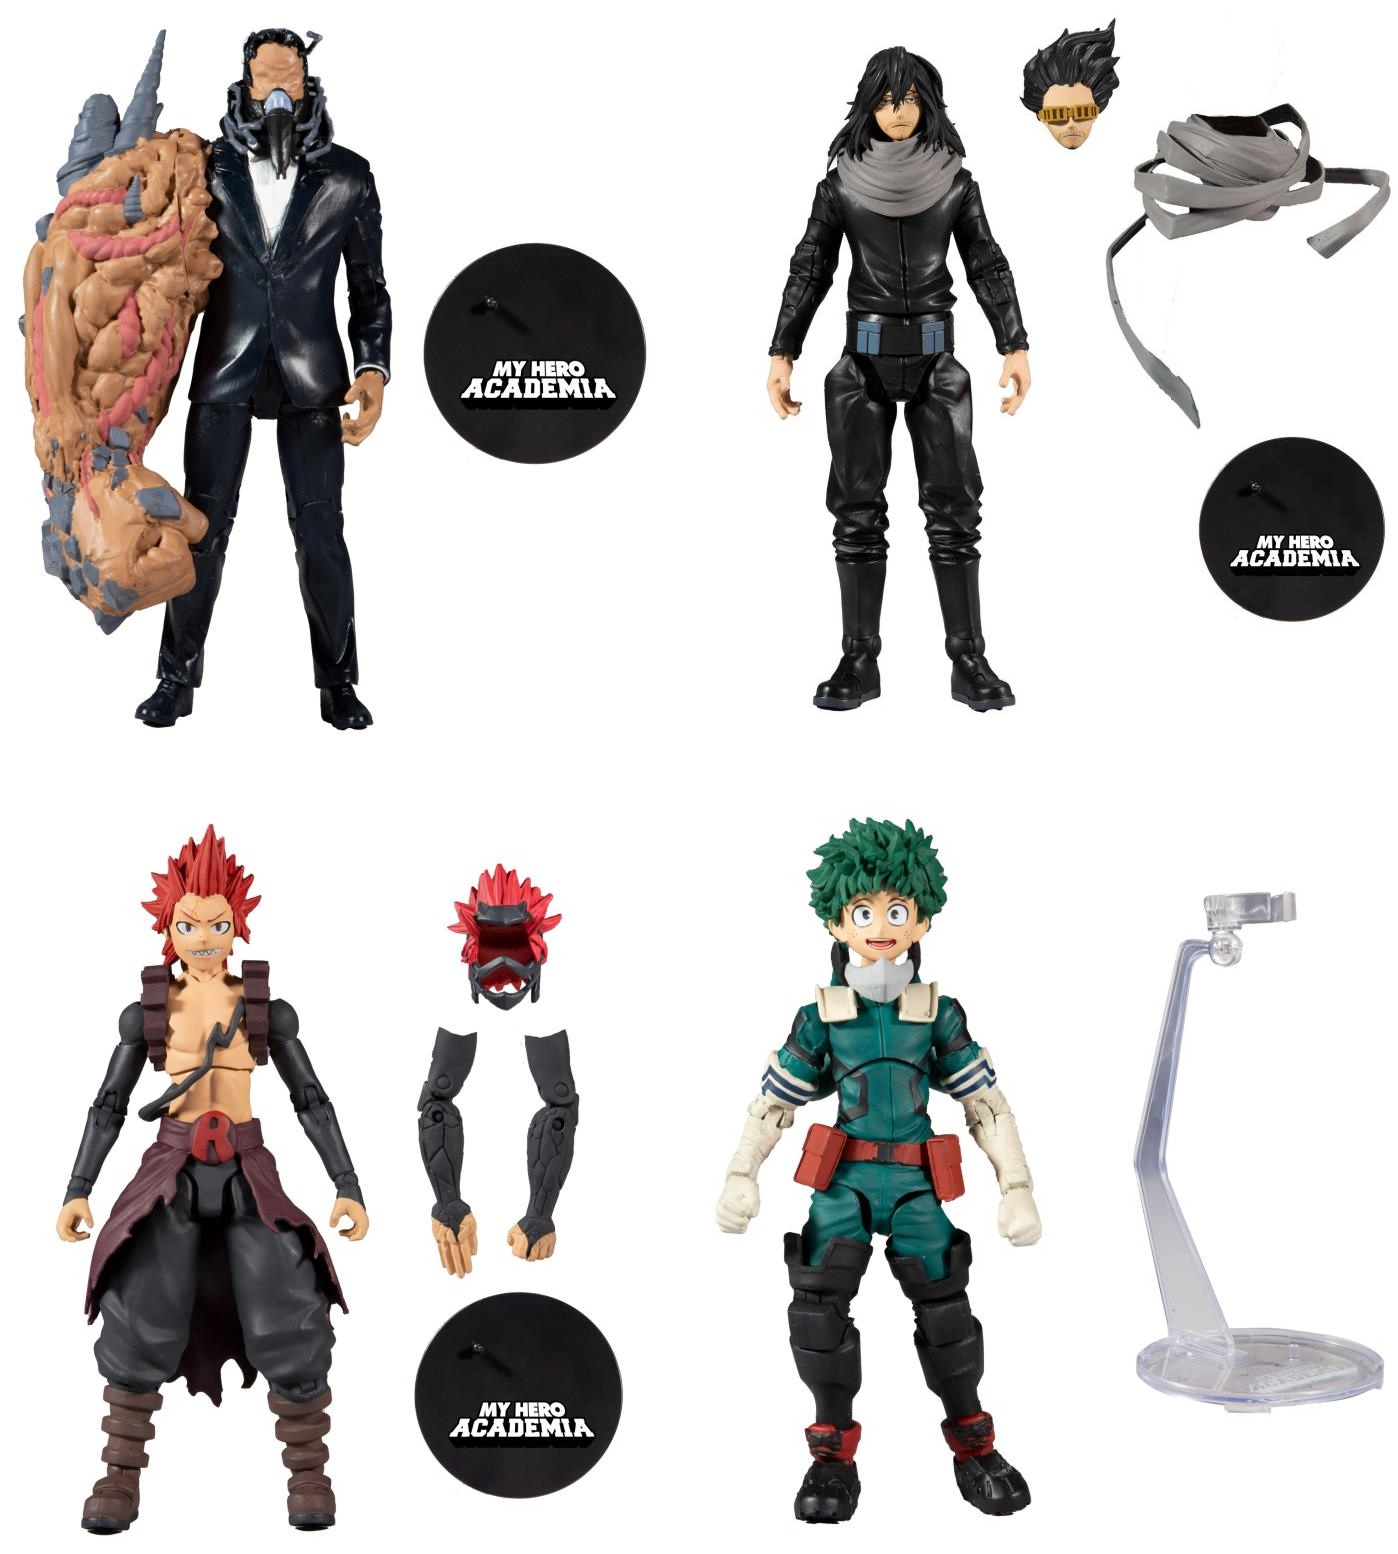 MY HERO ACADEMIA SERIES 4  (SET OF 4) McFarlane Toys  7-Inch Action Figure